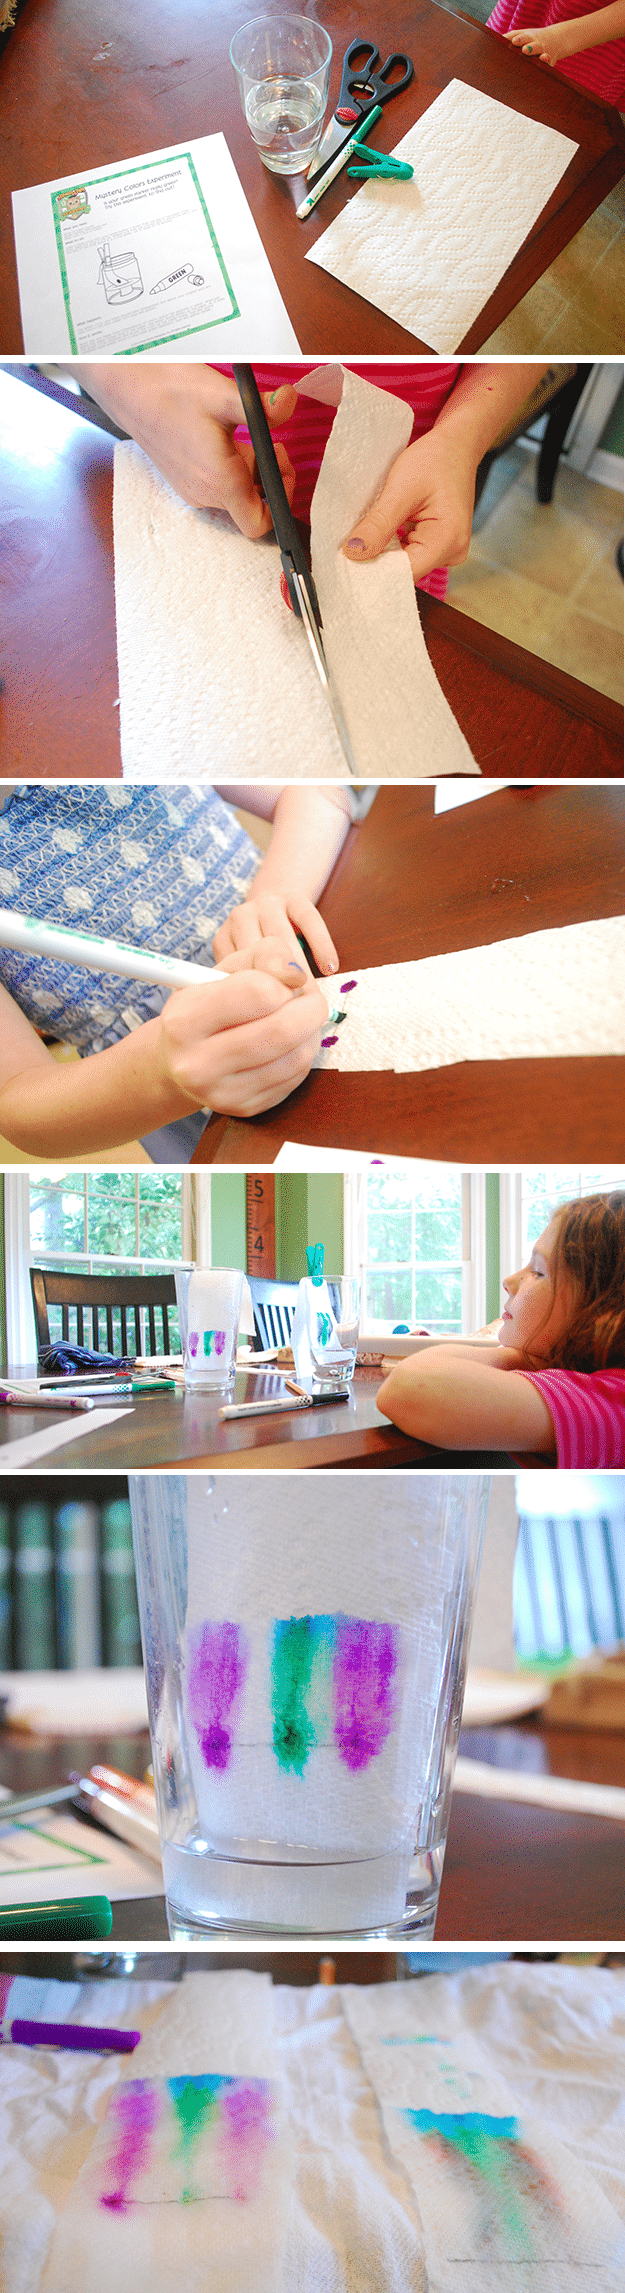 science for kids: paper chromatography for kids